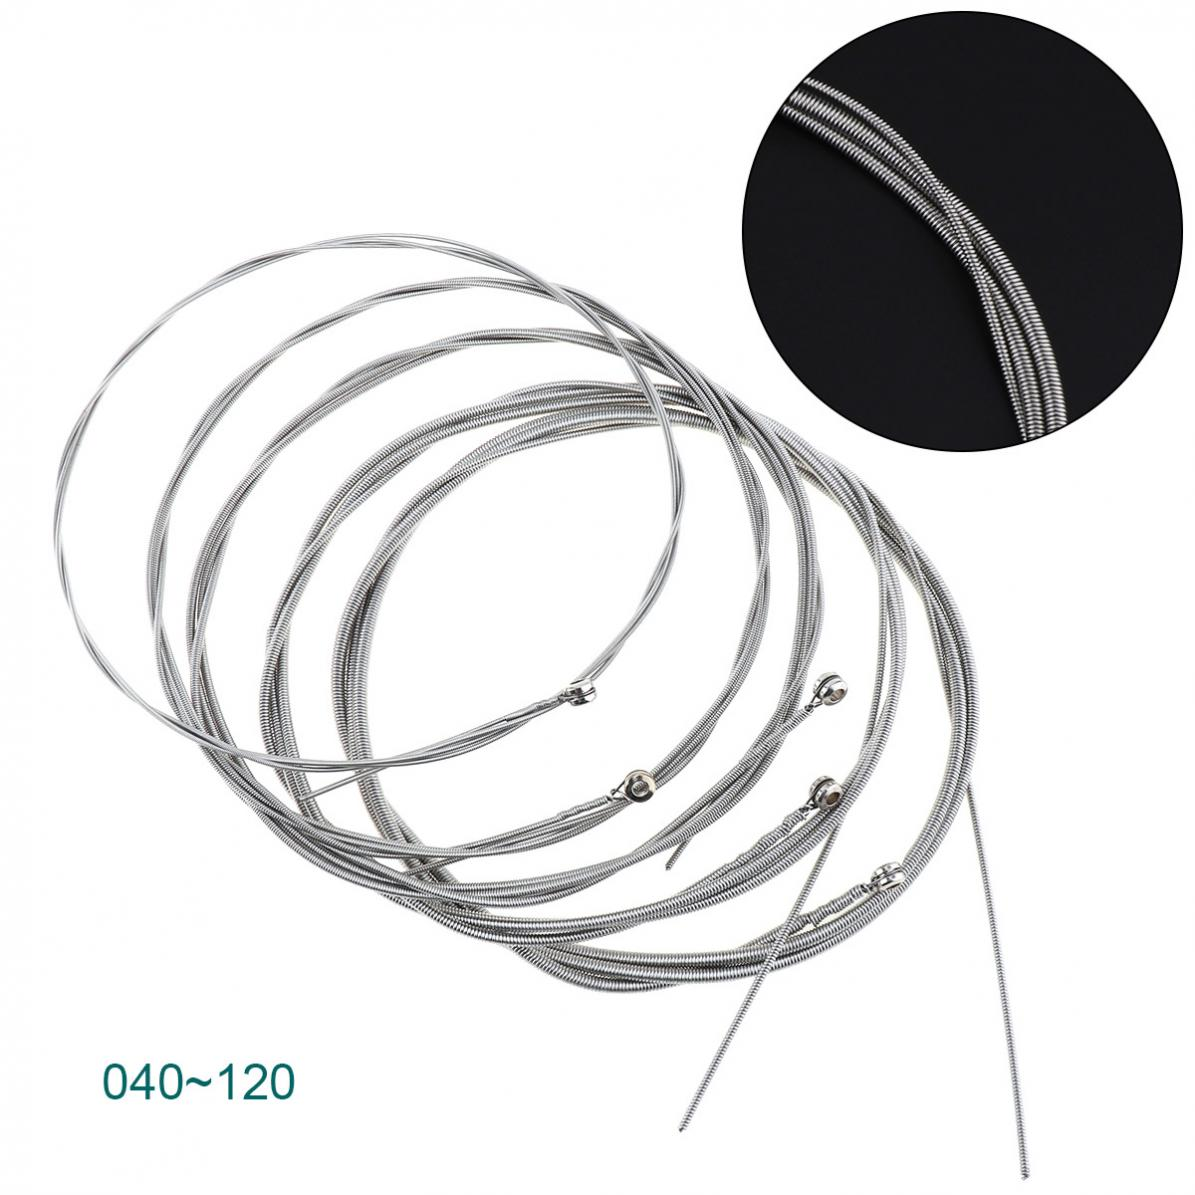 Orphee VX130 Electric Bass Strings Hexagonal Steel Nickel Alloy Wire Medium Light Strong 5 Strings Guitar Accessories